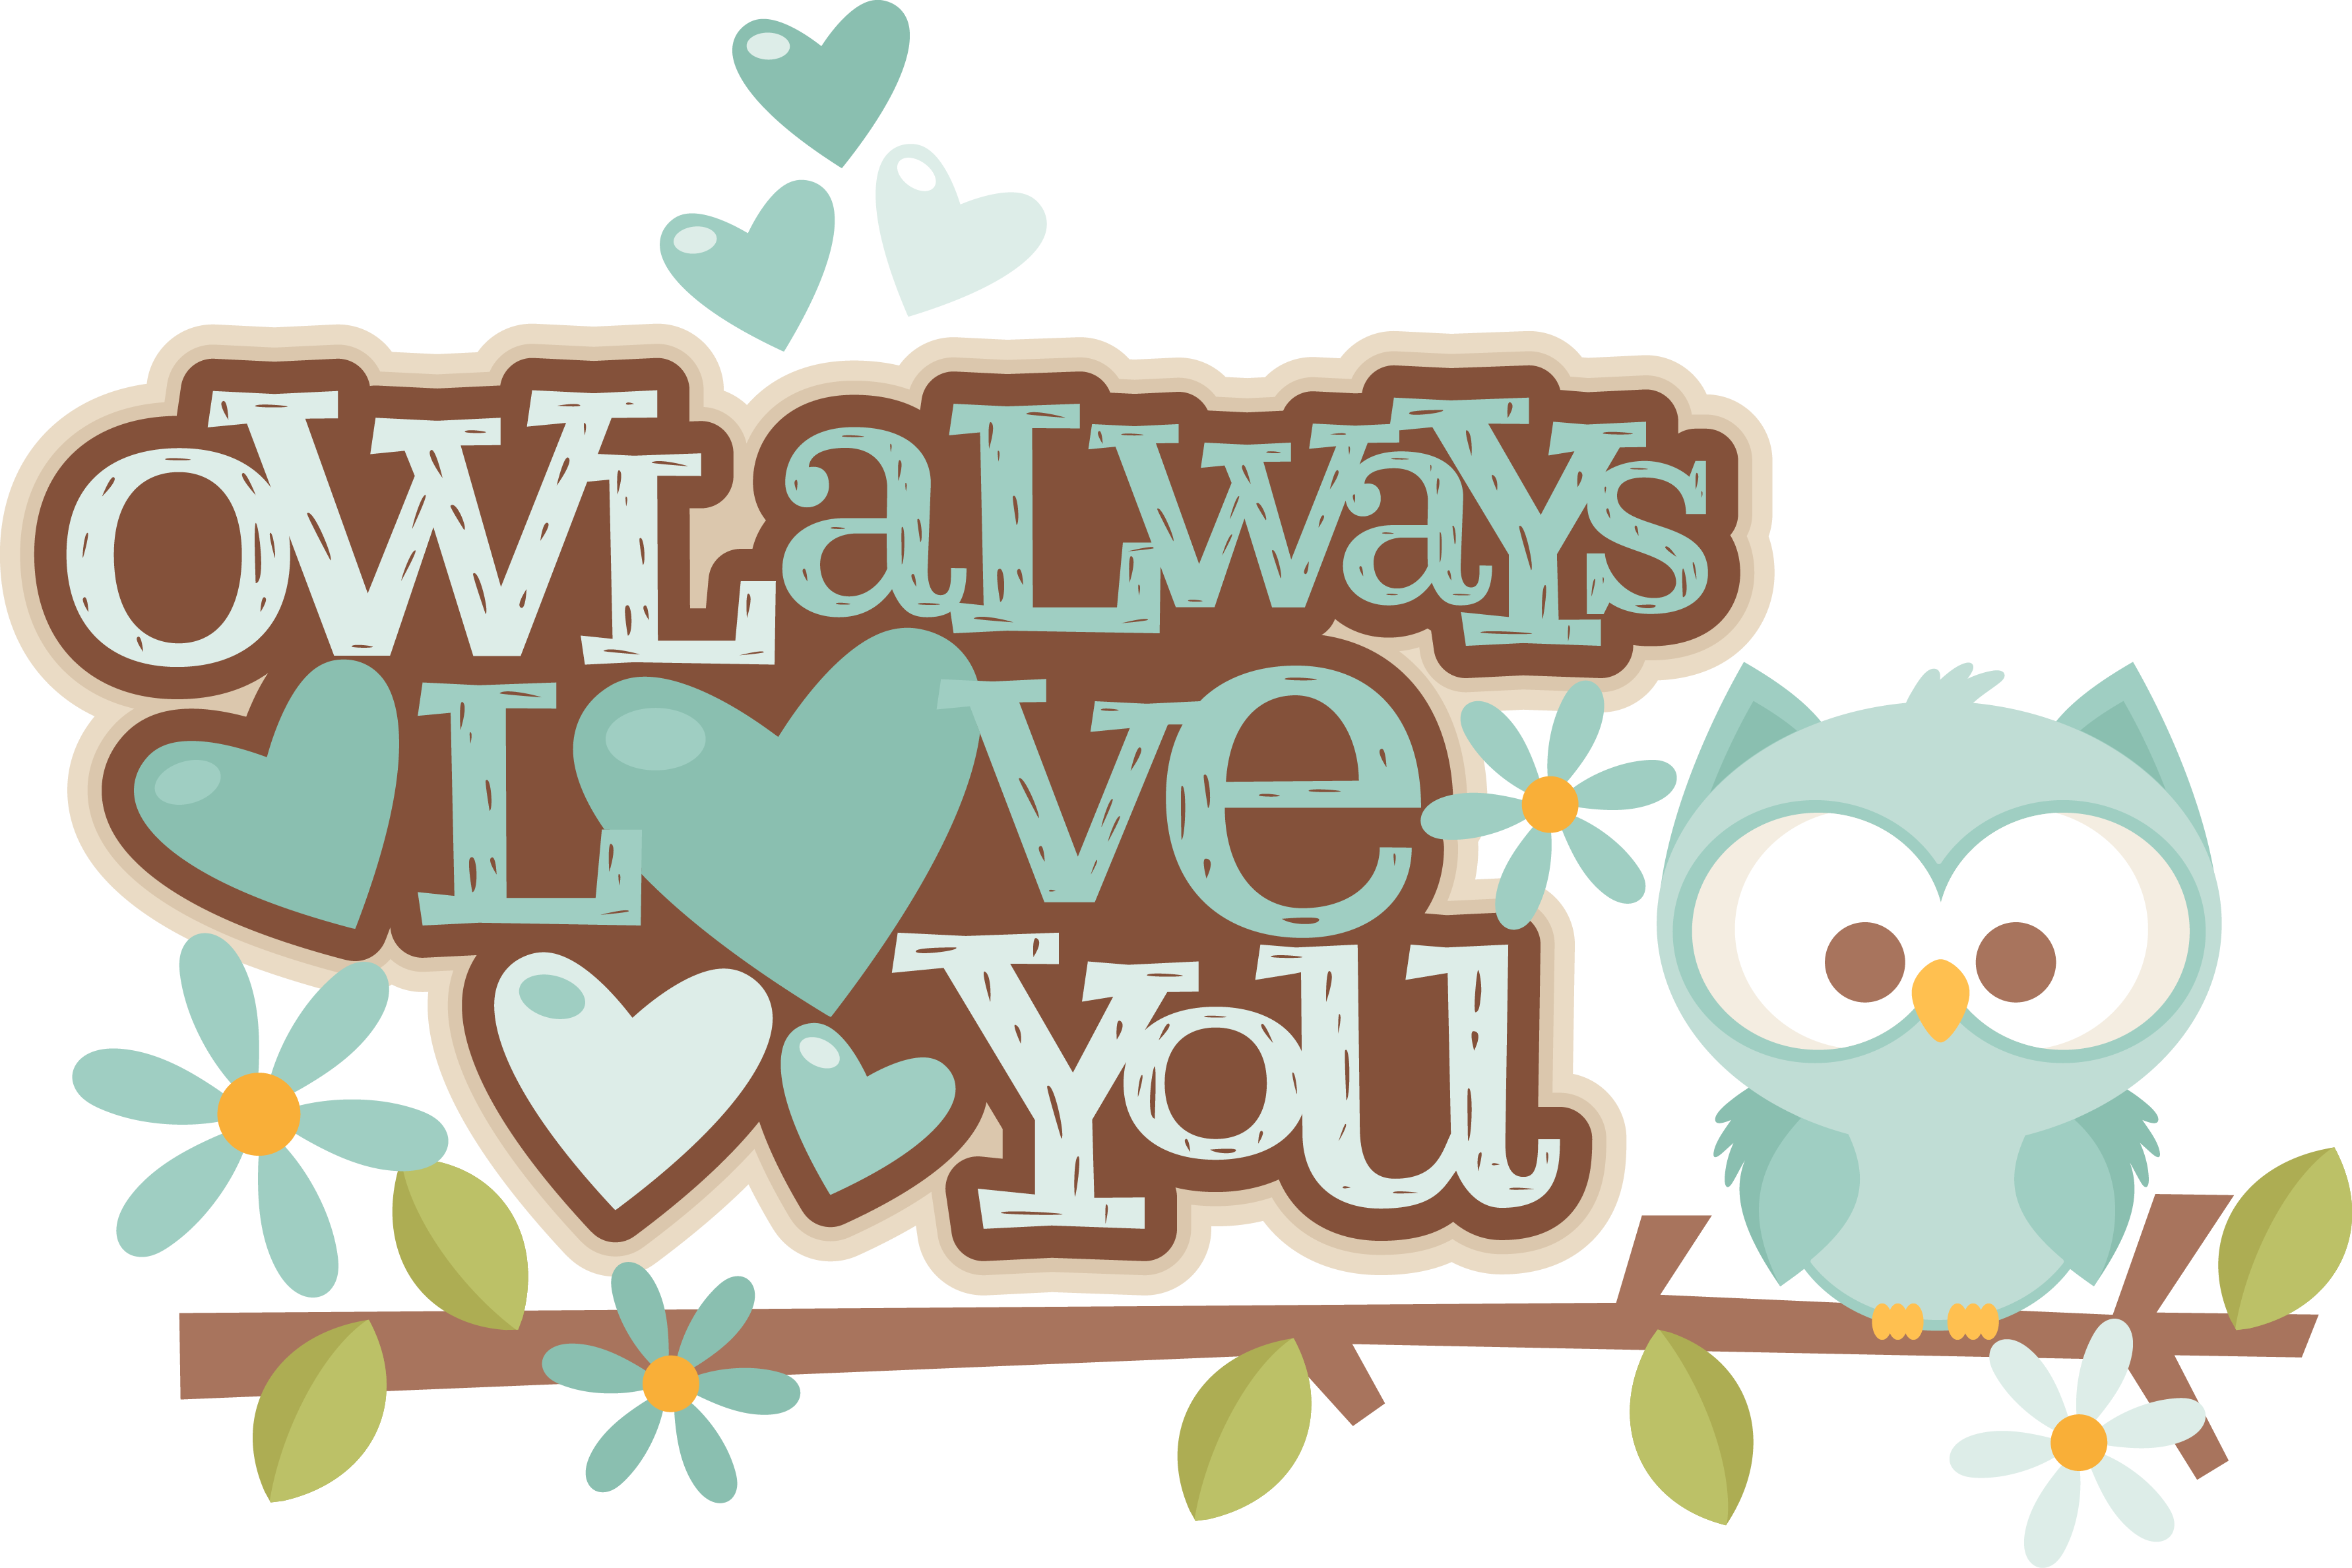 Download MKC_OwlAlwaysLoveYouTitle_SVG.png | Owl always love you ...